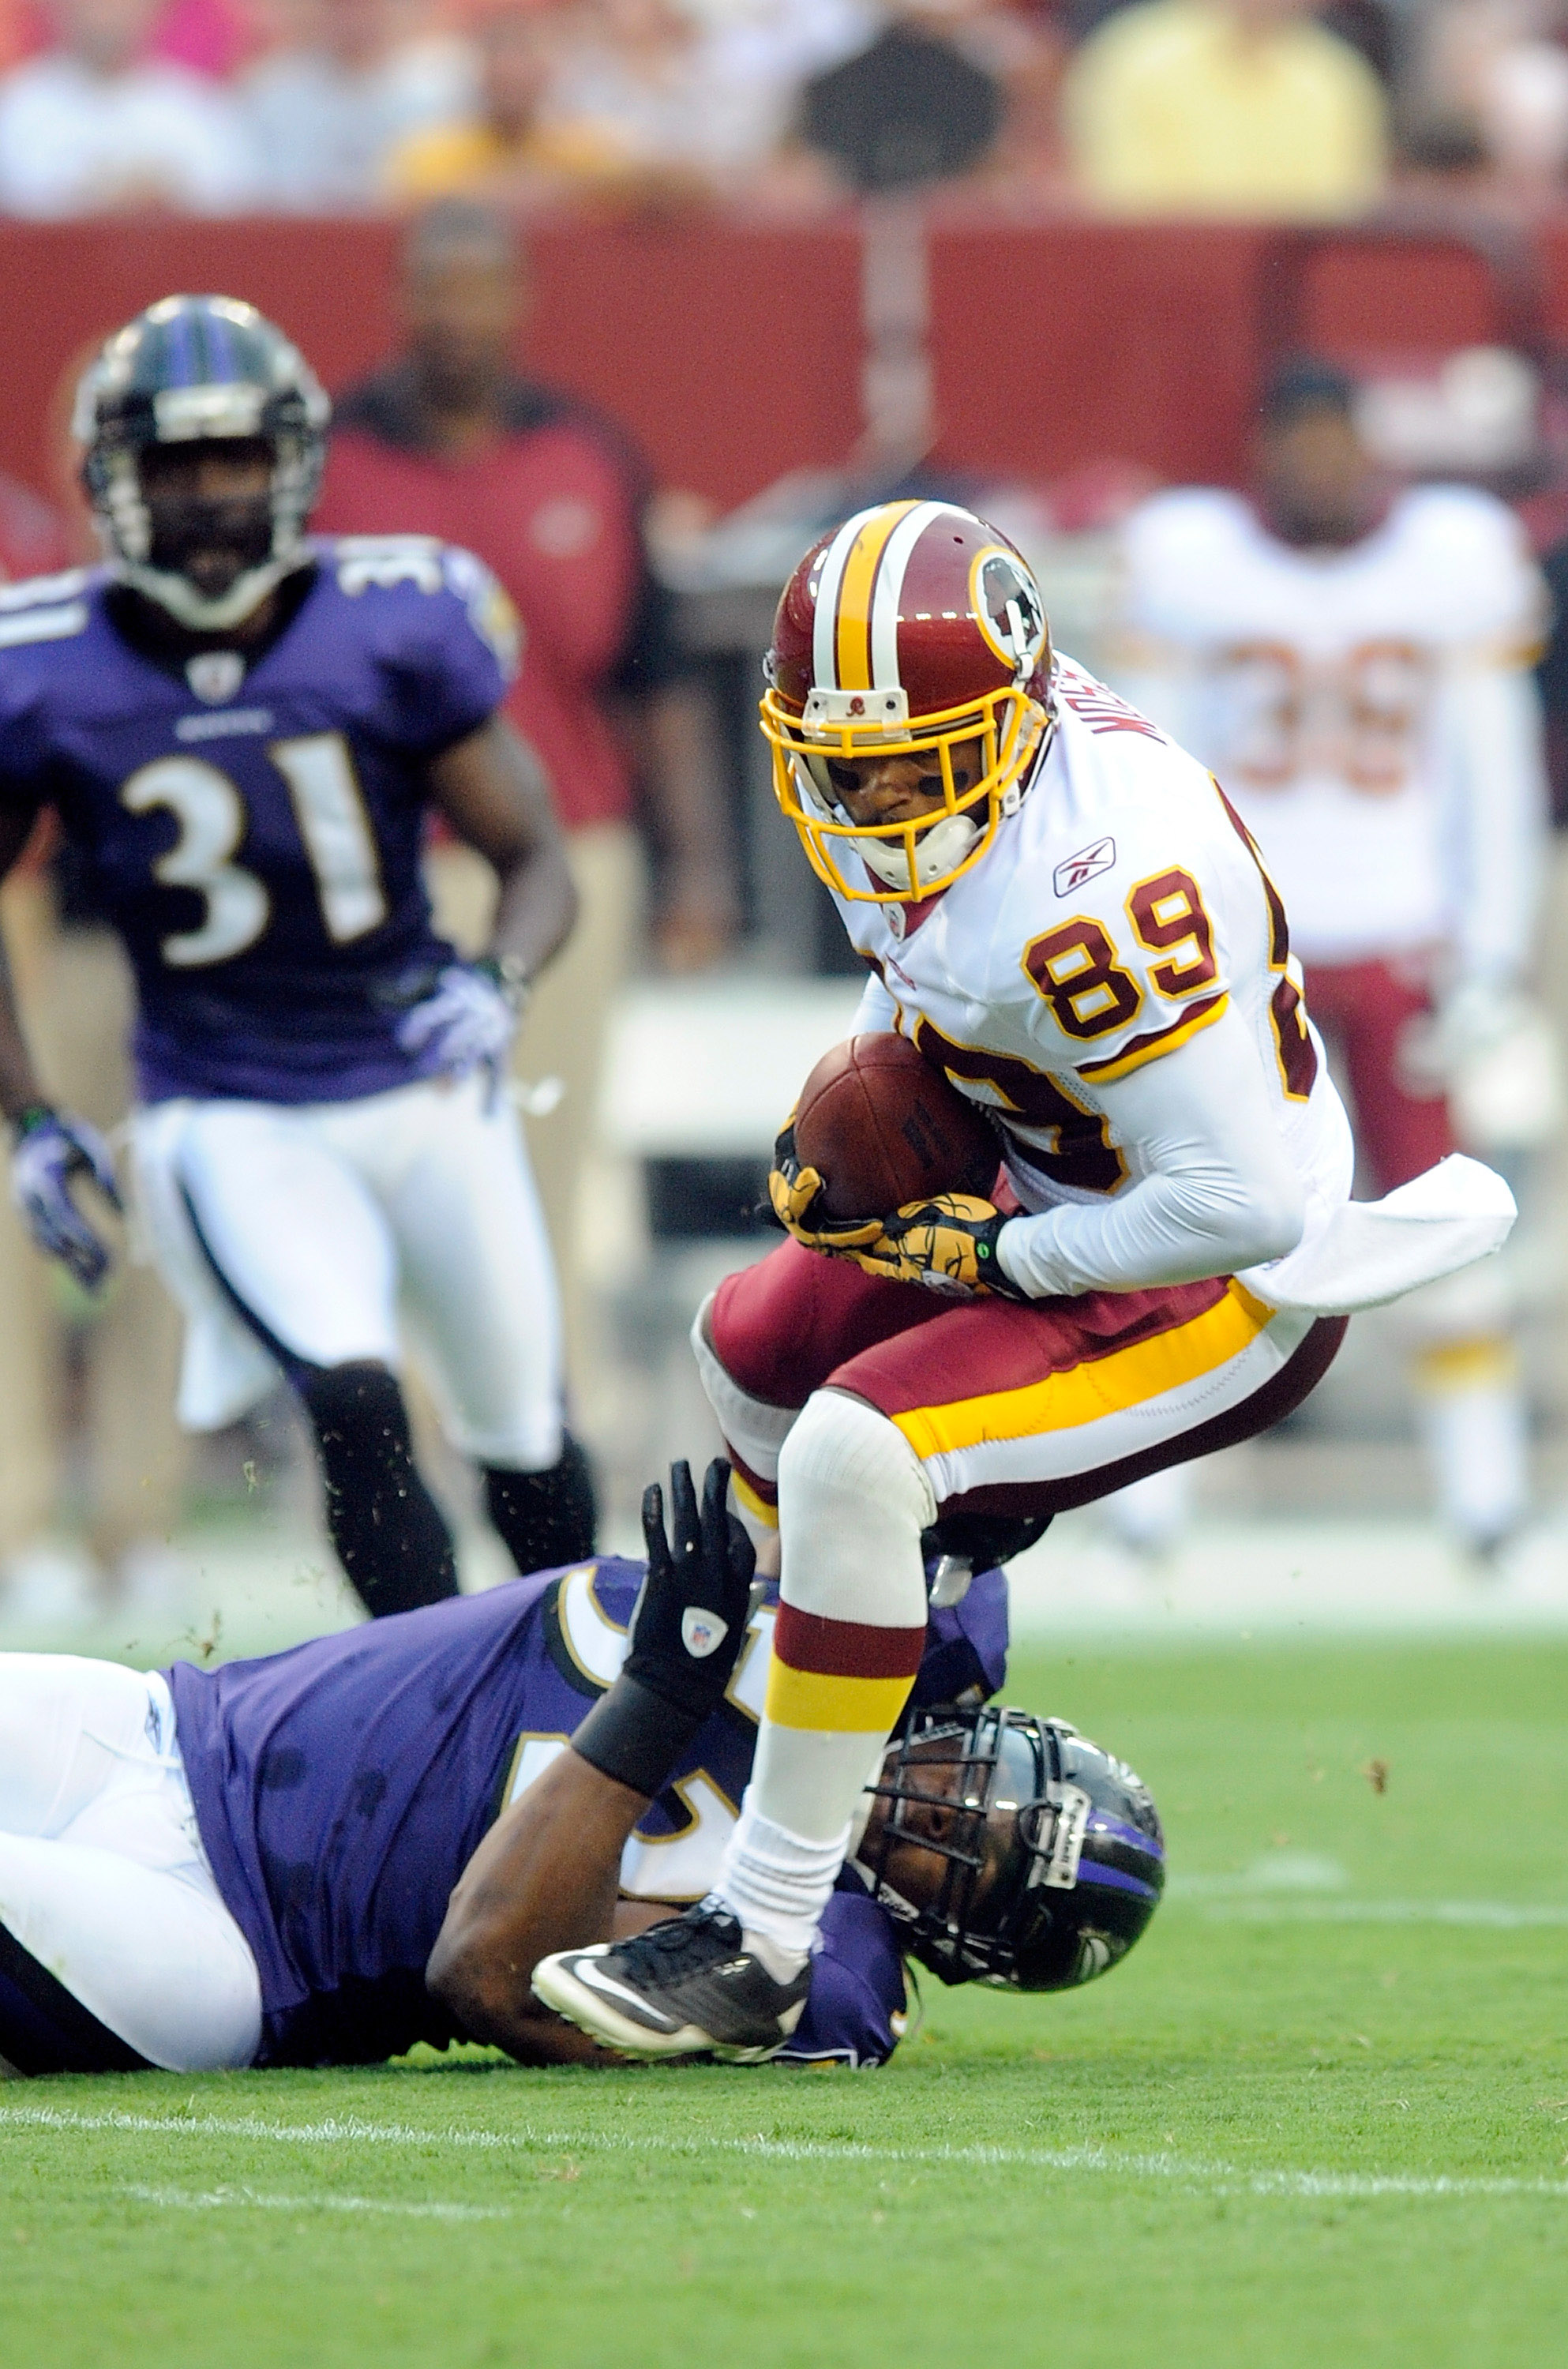 LANDOVER, MD - AUGUST 21:  Santana Moss #89 of the Washington Redskins is tackled during the preseason game by Ray Lewis #52 of the Baltimore Ravens at FedExField on August 21, 2010 in Landover, Maryland.  (Photo by Greg Fiume/Getty Images)